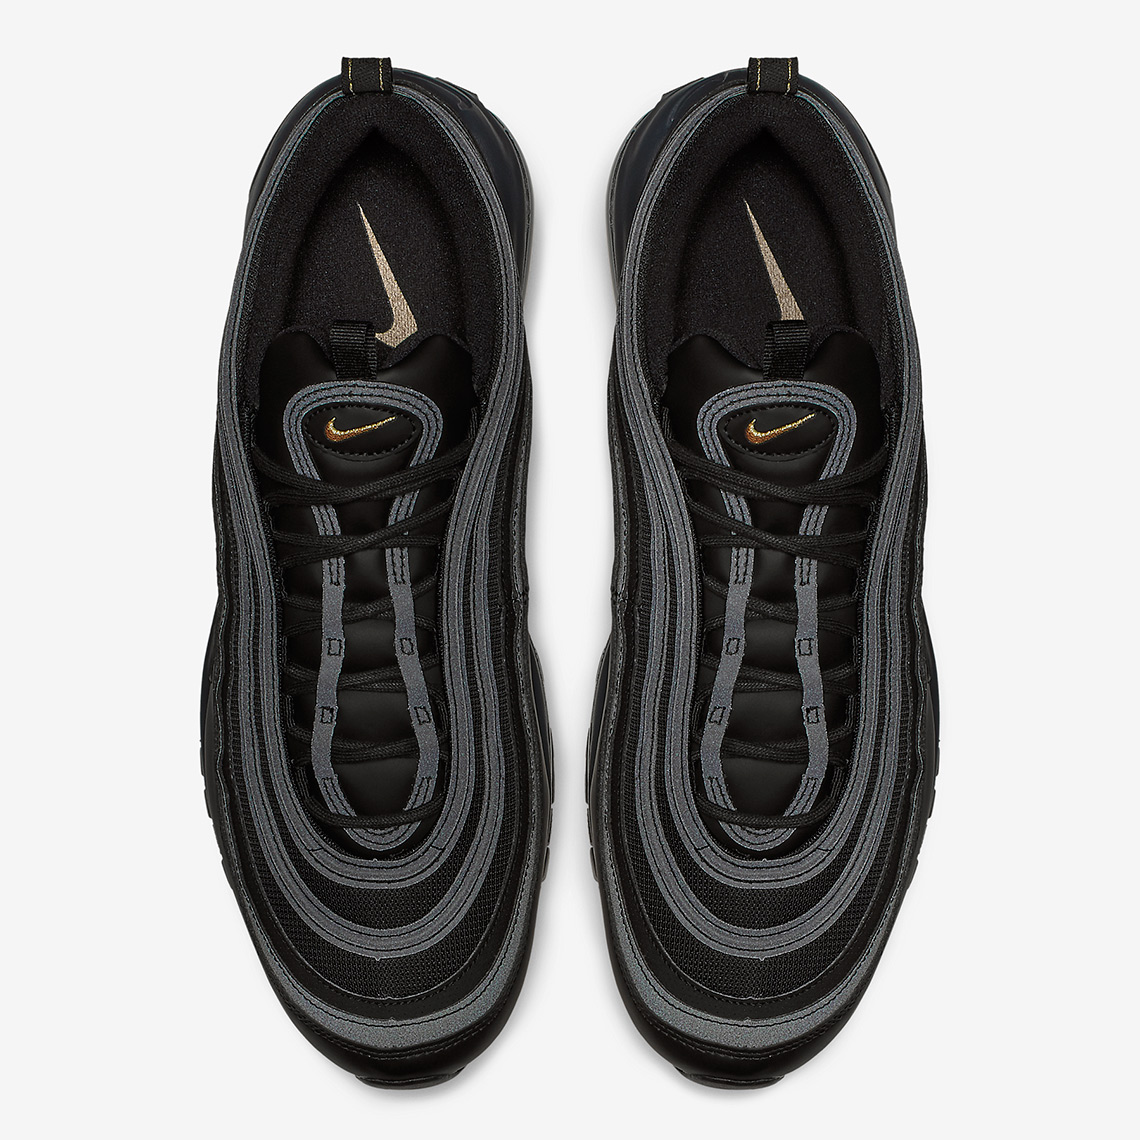 Nike Air Max 97  170. Color  Black Metallic Gold Anthracite Style Code   BQ4580-001. Where to Buy. Foot Locker Available ad4db28c1